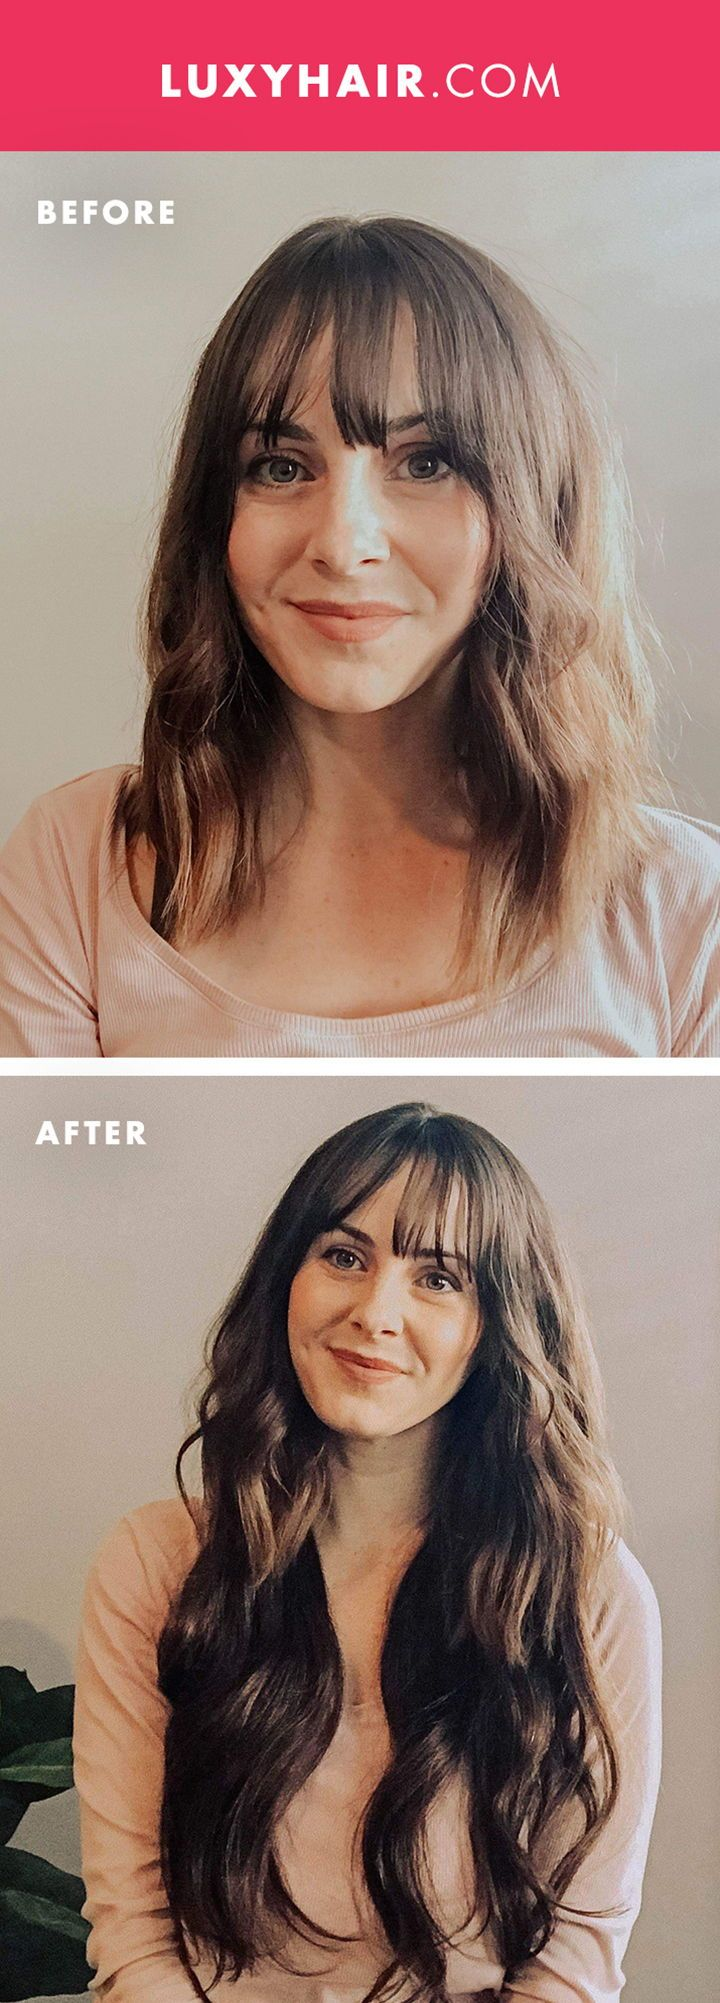 The 108 Best Luxy Hair Transformations Images On Pinterest Amazing